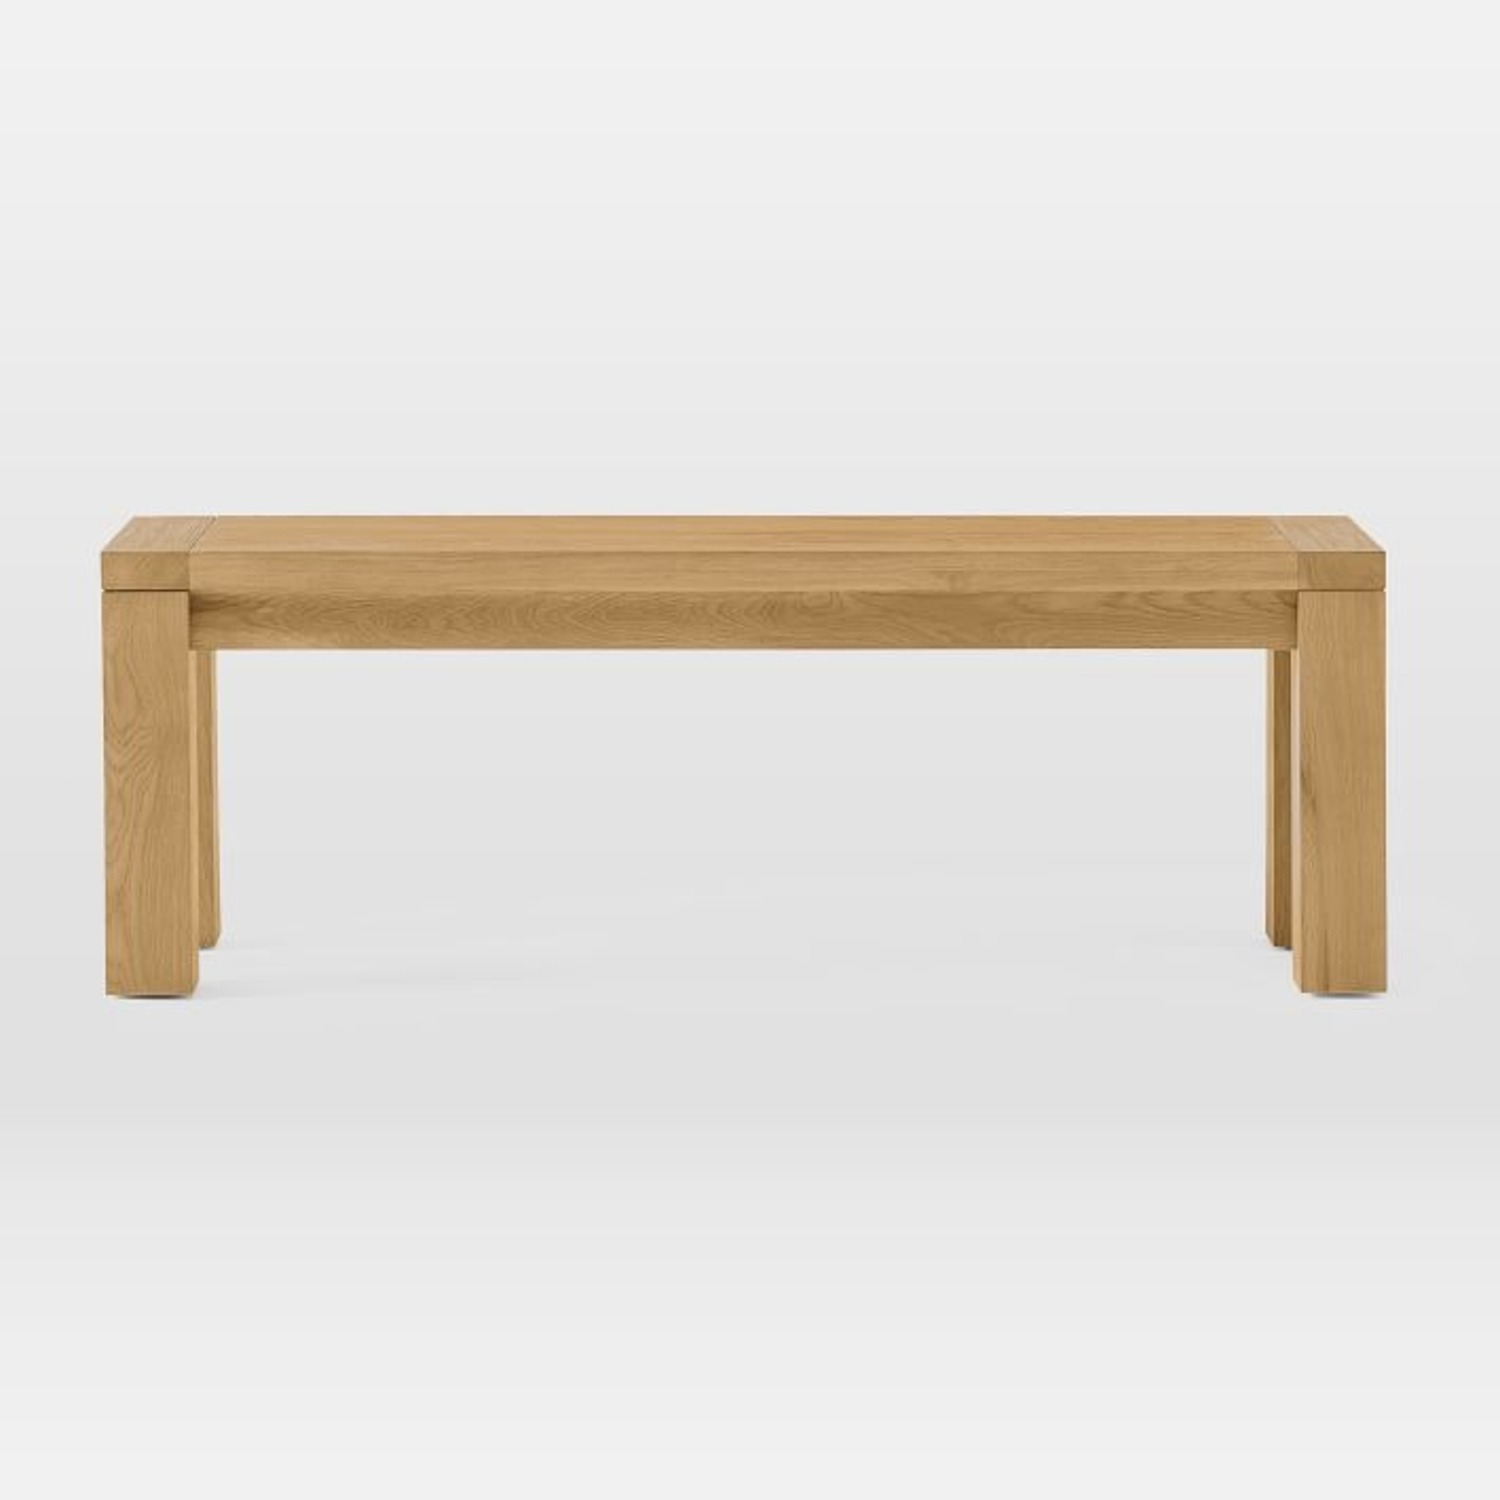 West Elm Tahoe Solid Wood Dining Bench - image-3